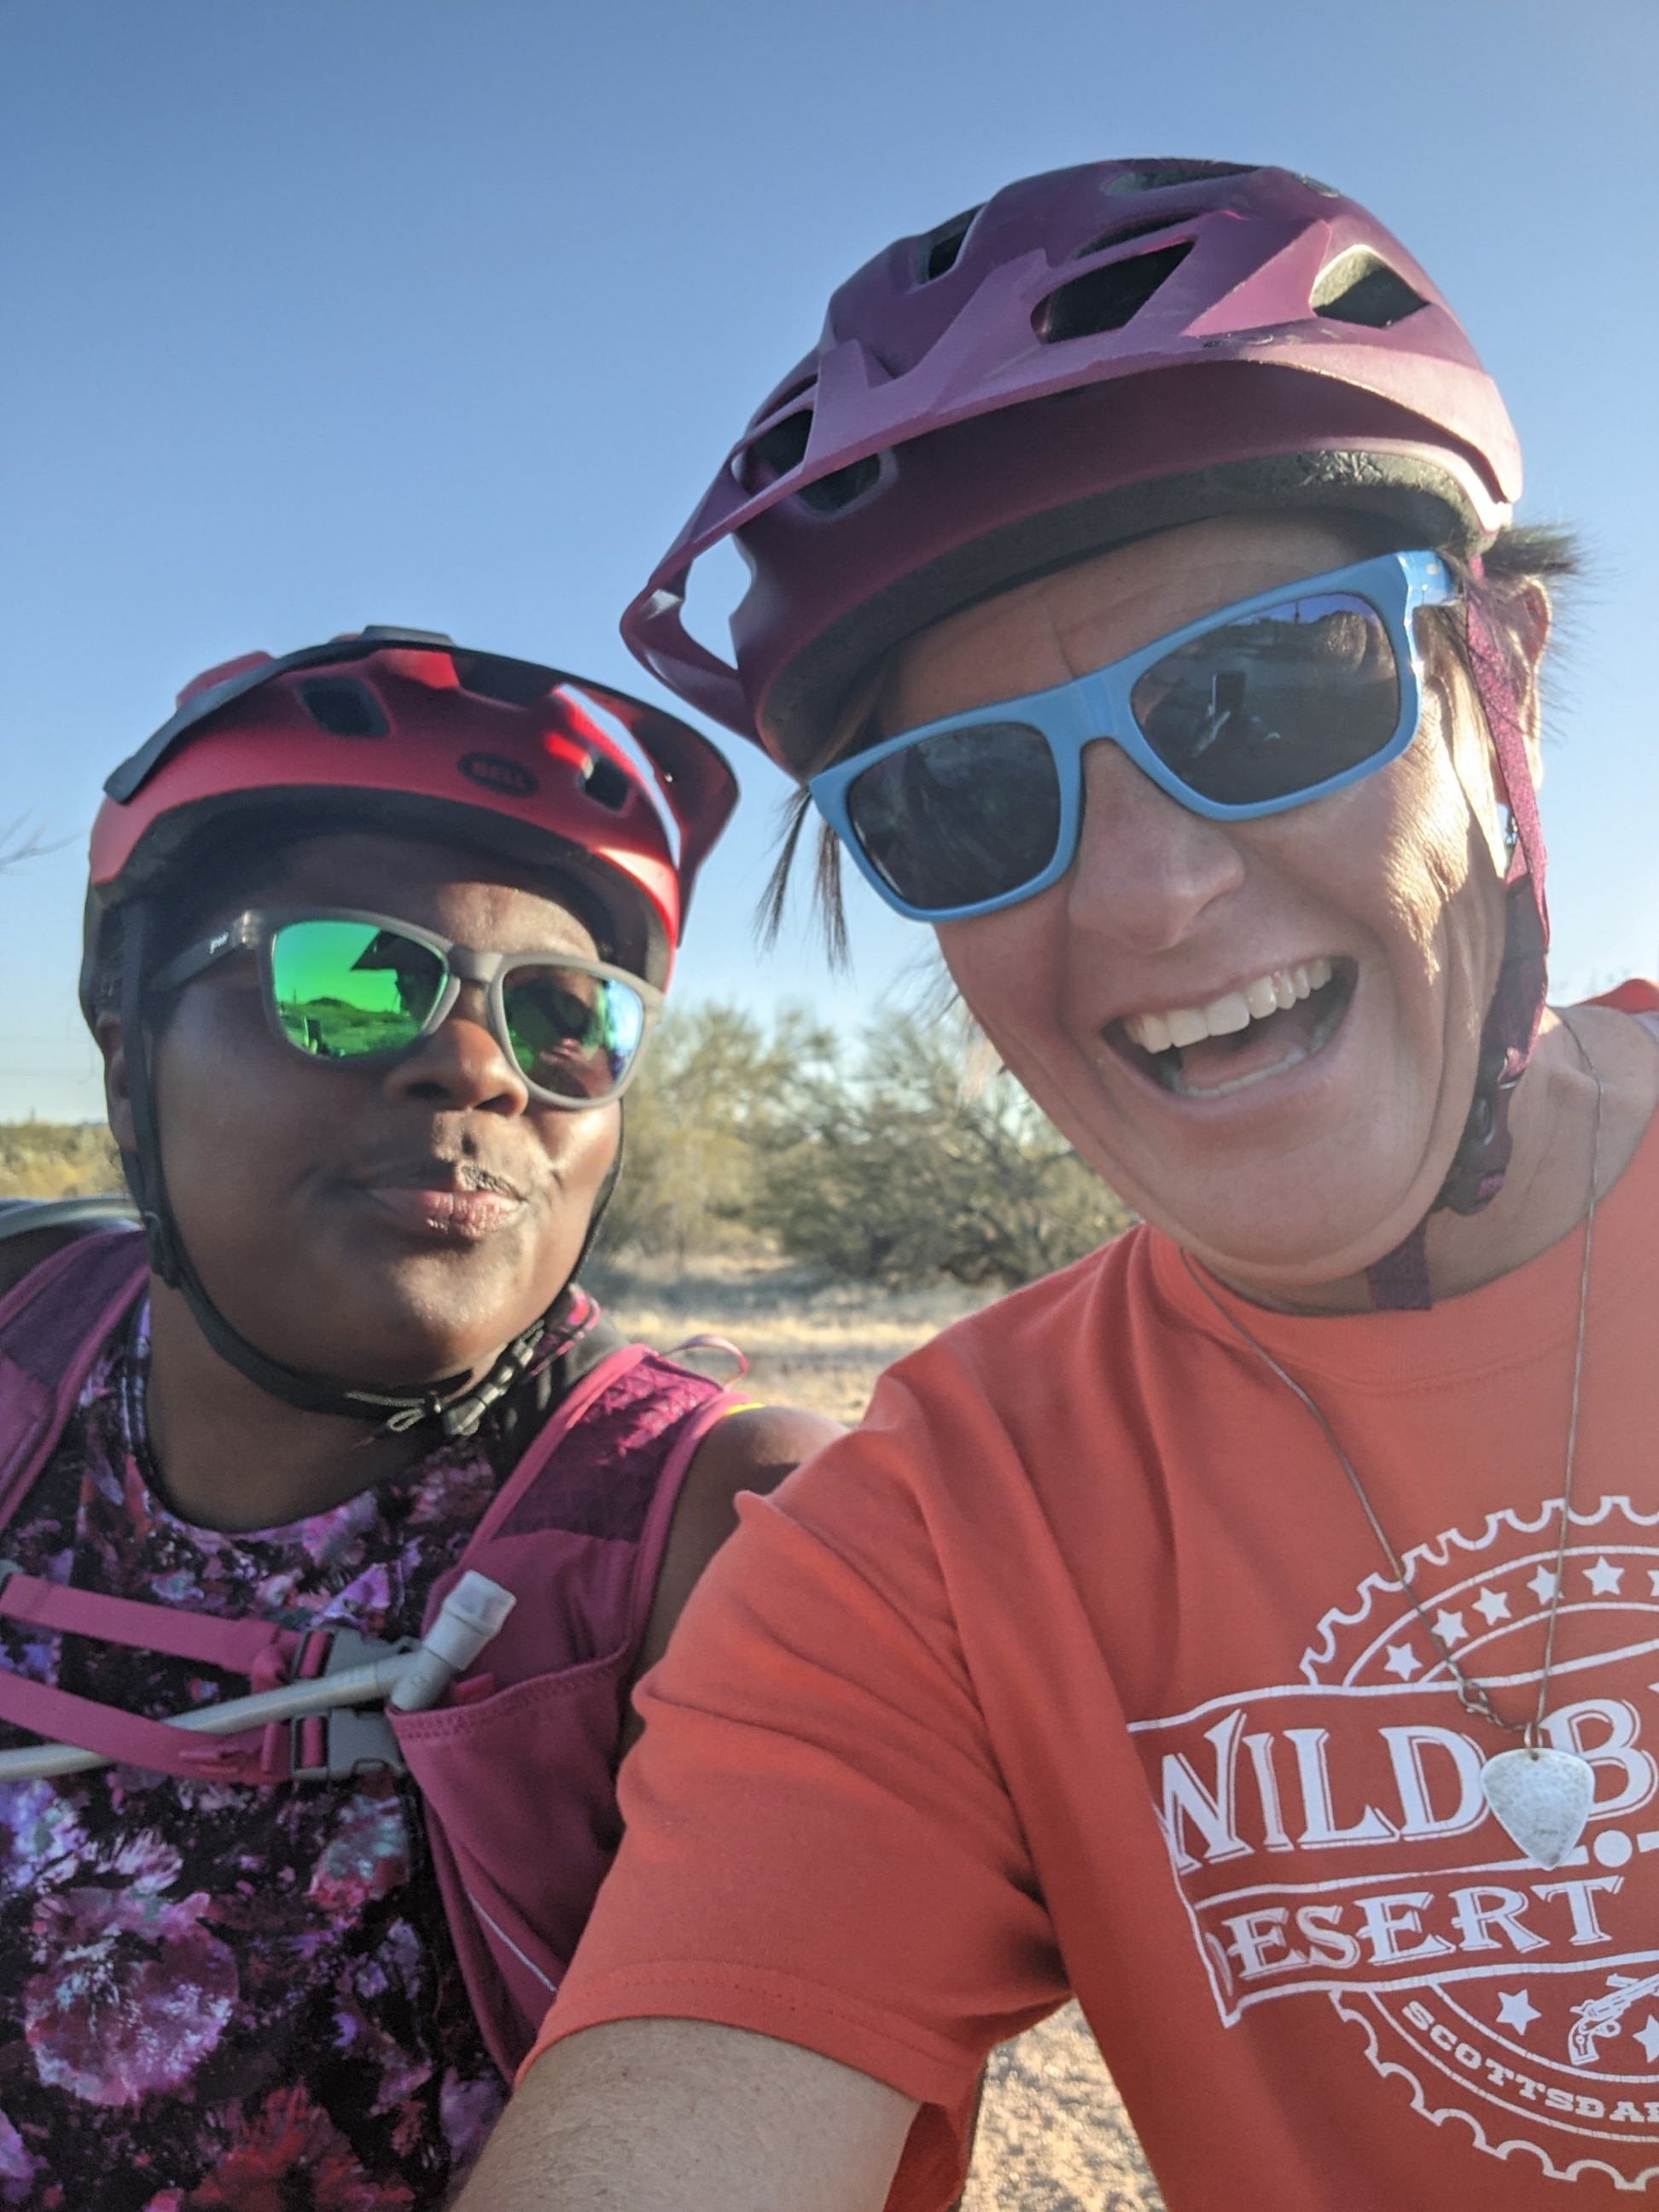 The Mirnavator (left) and Laurel Darren have their helmets on and are ready for their first mountain bike ride together.